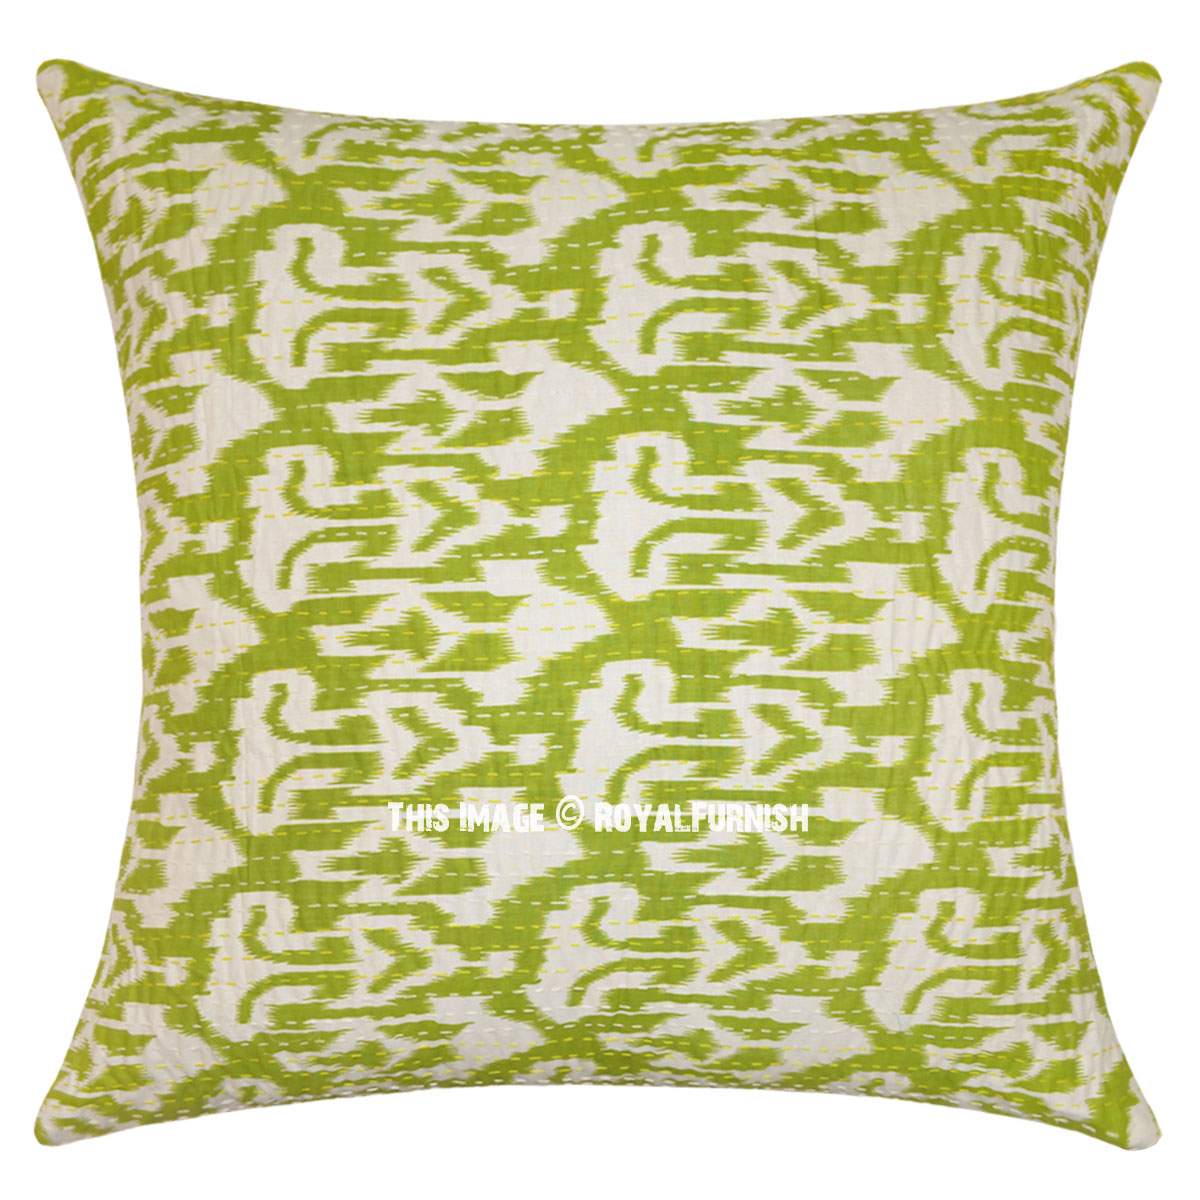 Green Accent Kantha Ikat Kantha Oversized Throw Pillow Cover Royalfurnish Com